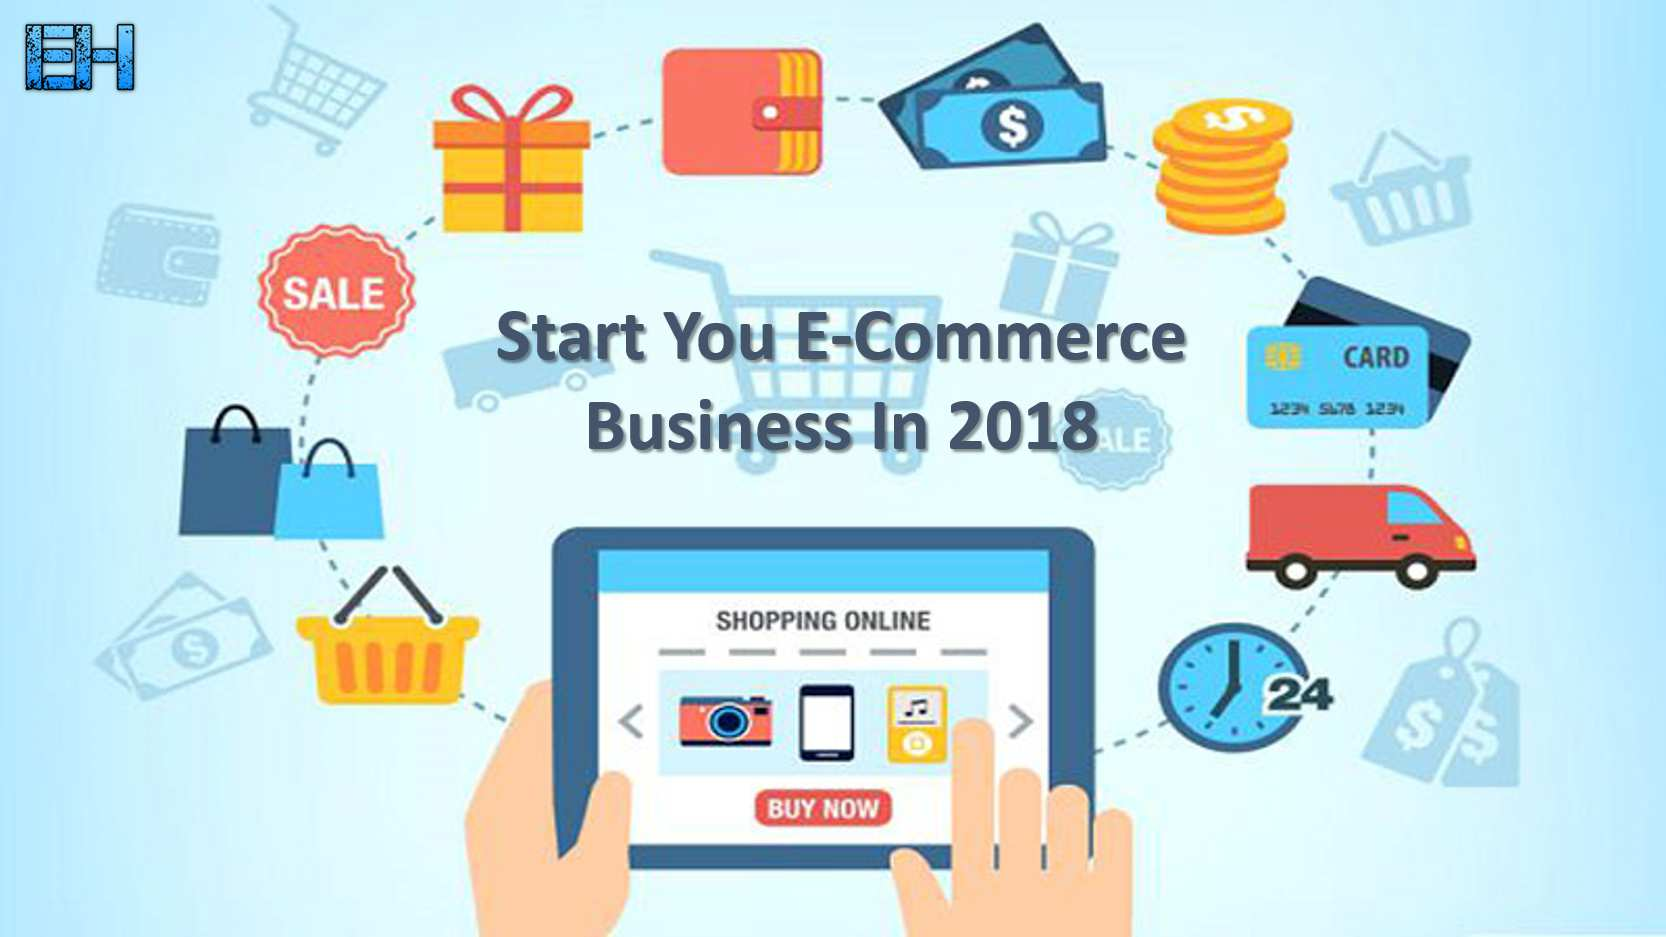 ecommerce business ideas